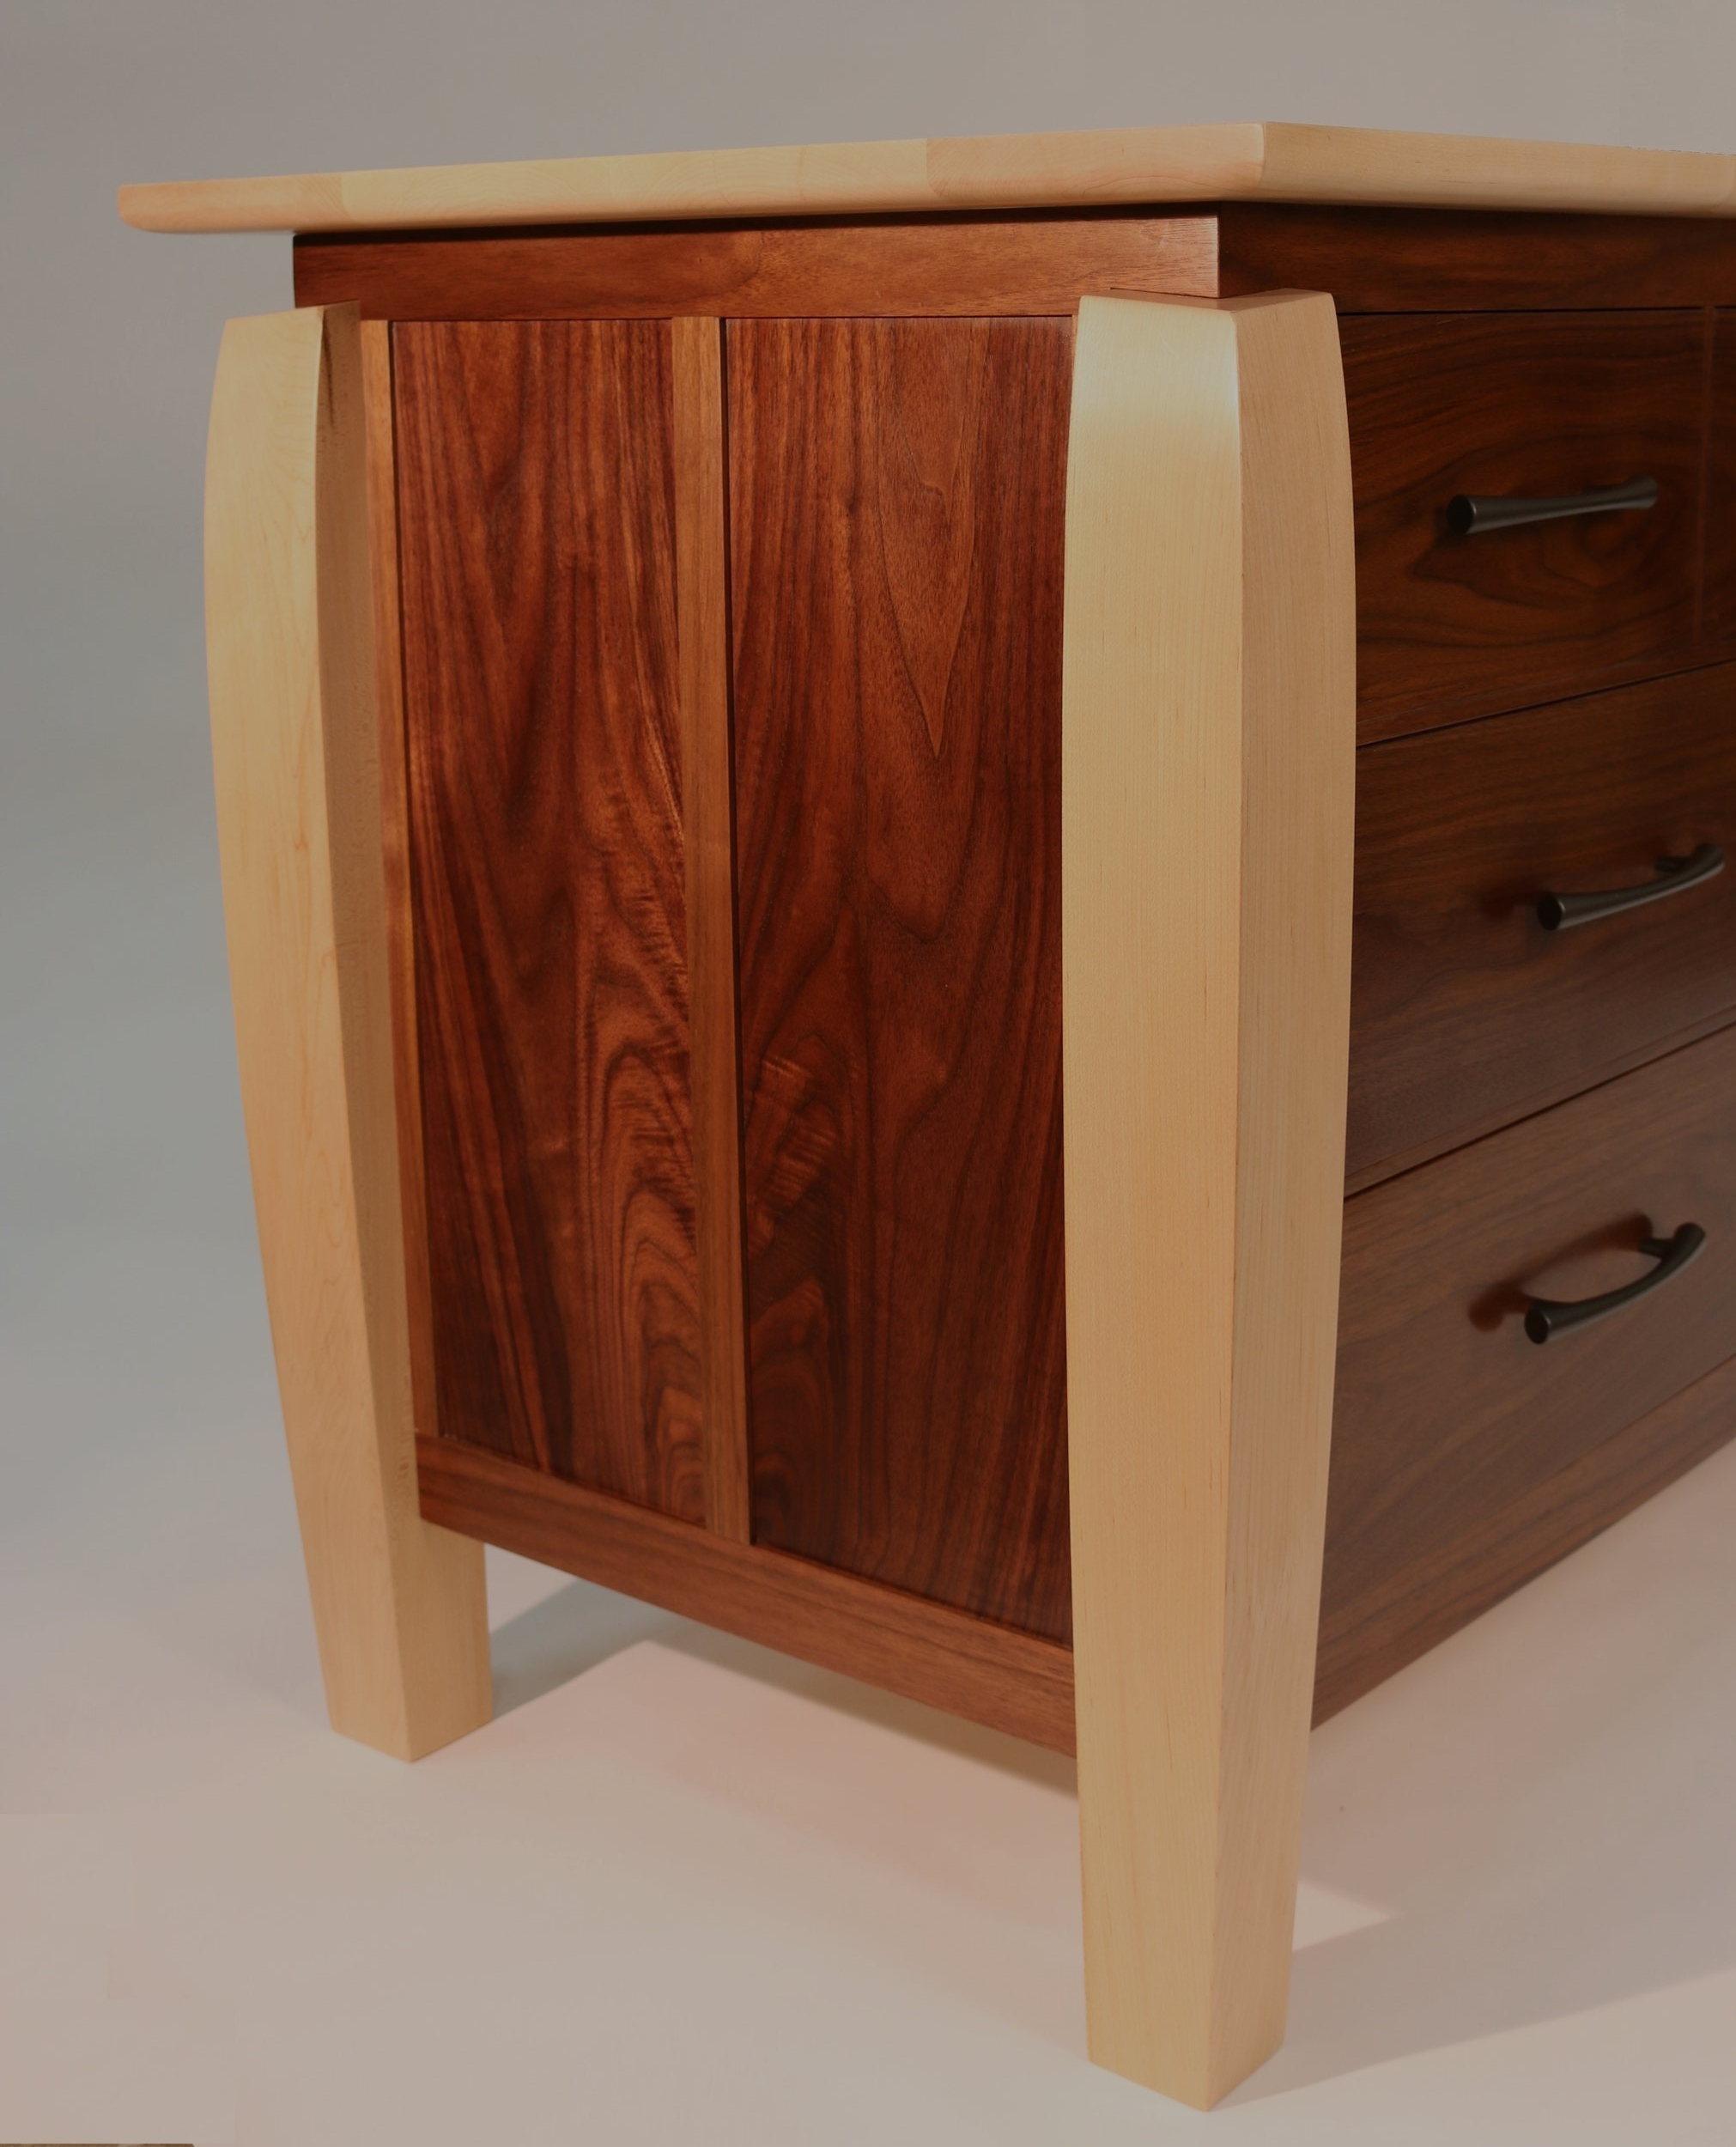 Walnut Dresser end view